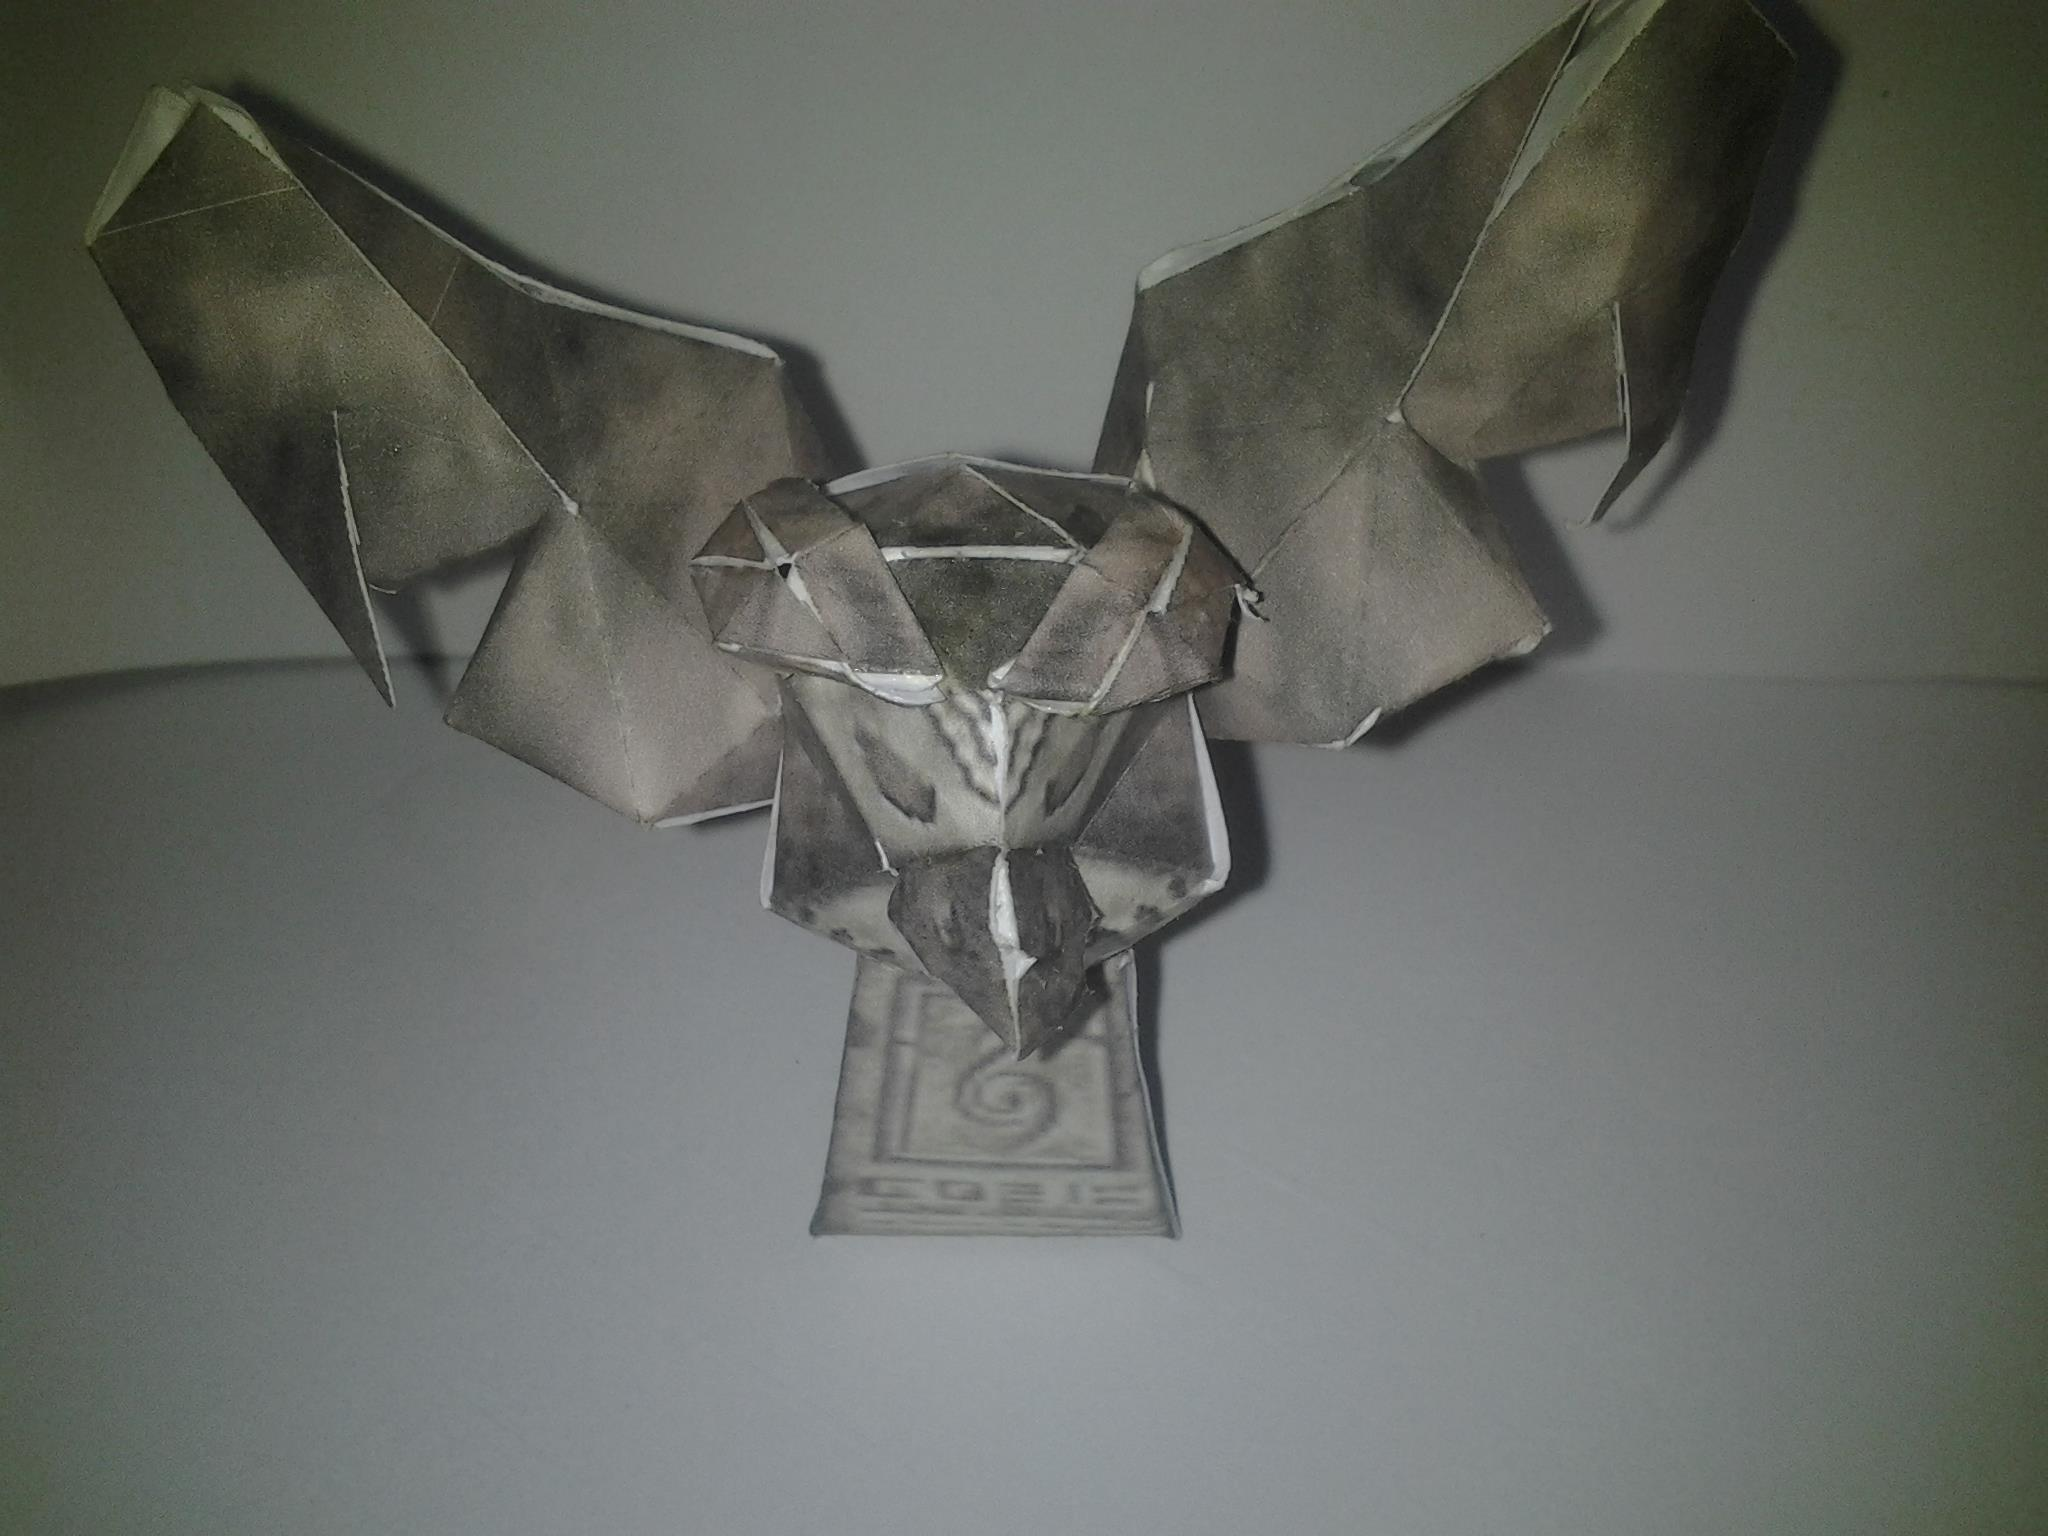 I made the owl statue from majora's mask out of paper